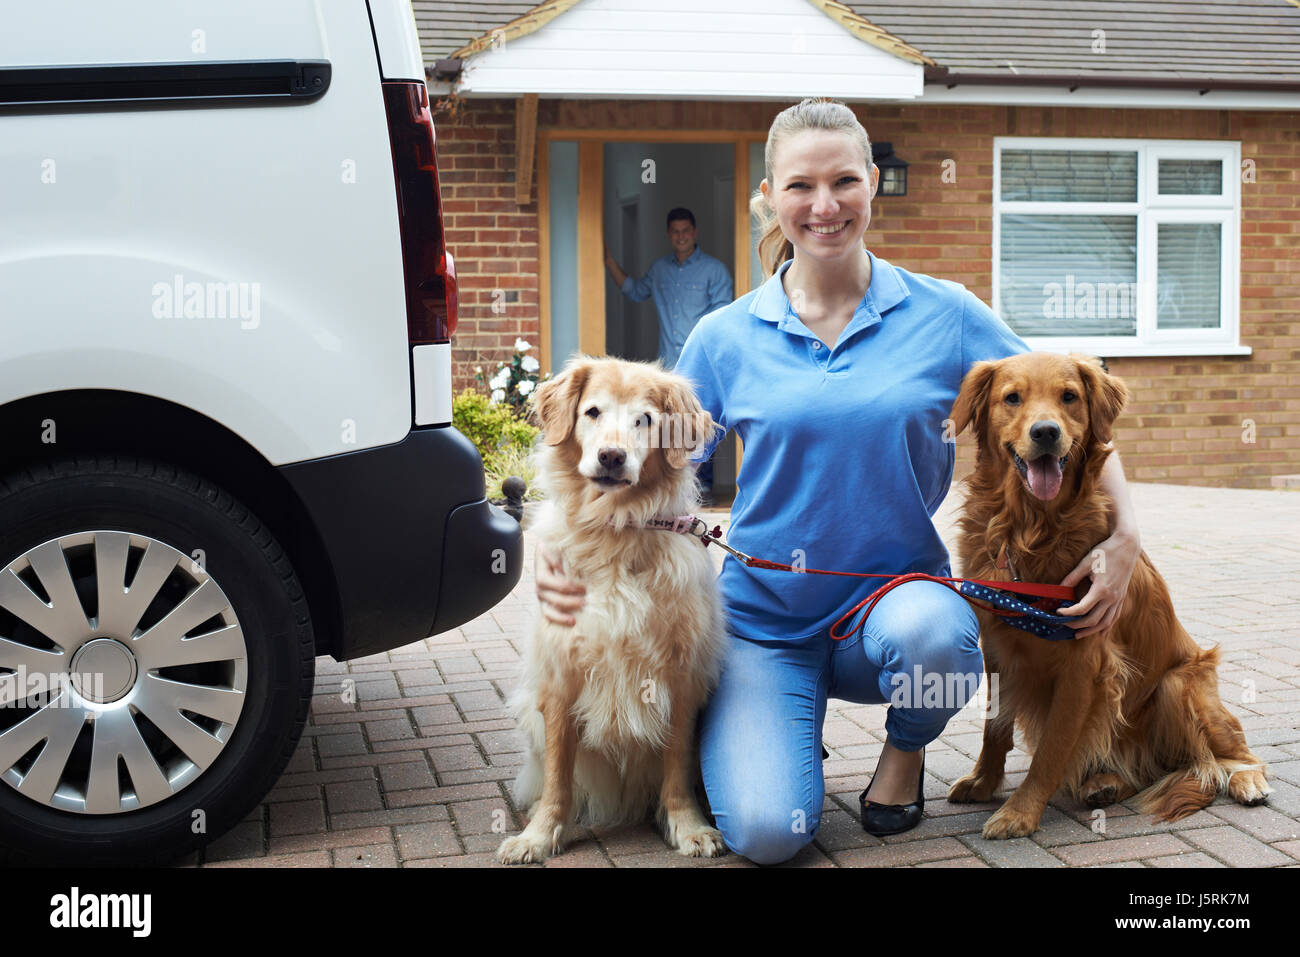 Portrait Of Woman Running Dog Walking Service - Stock Image